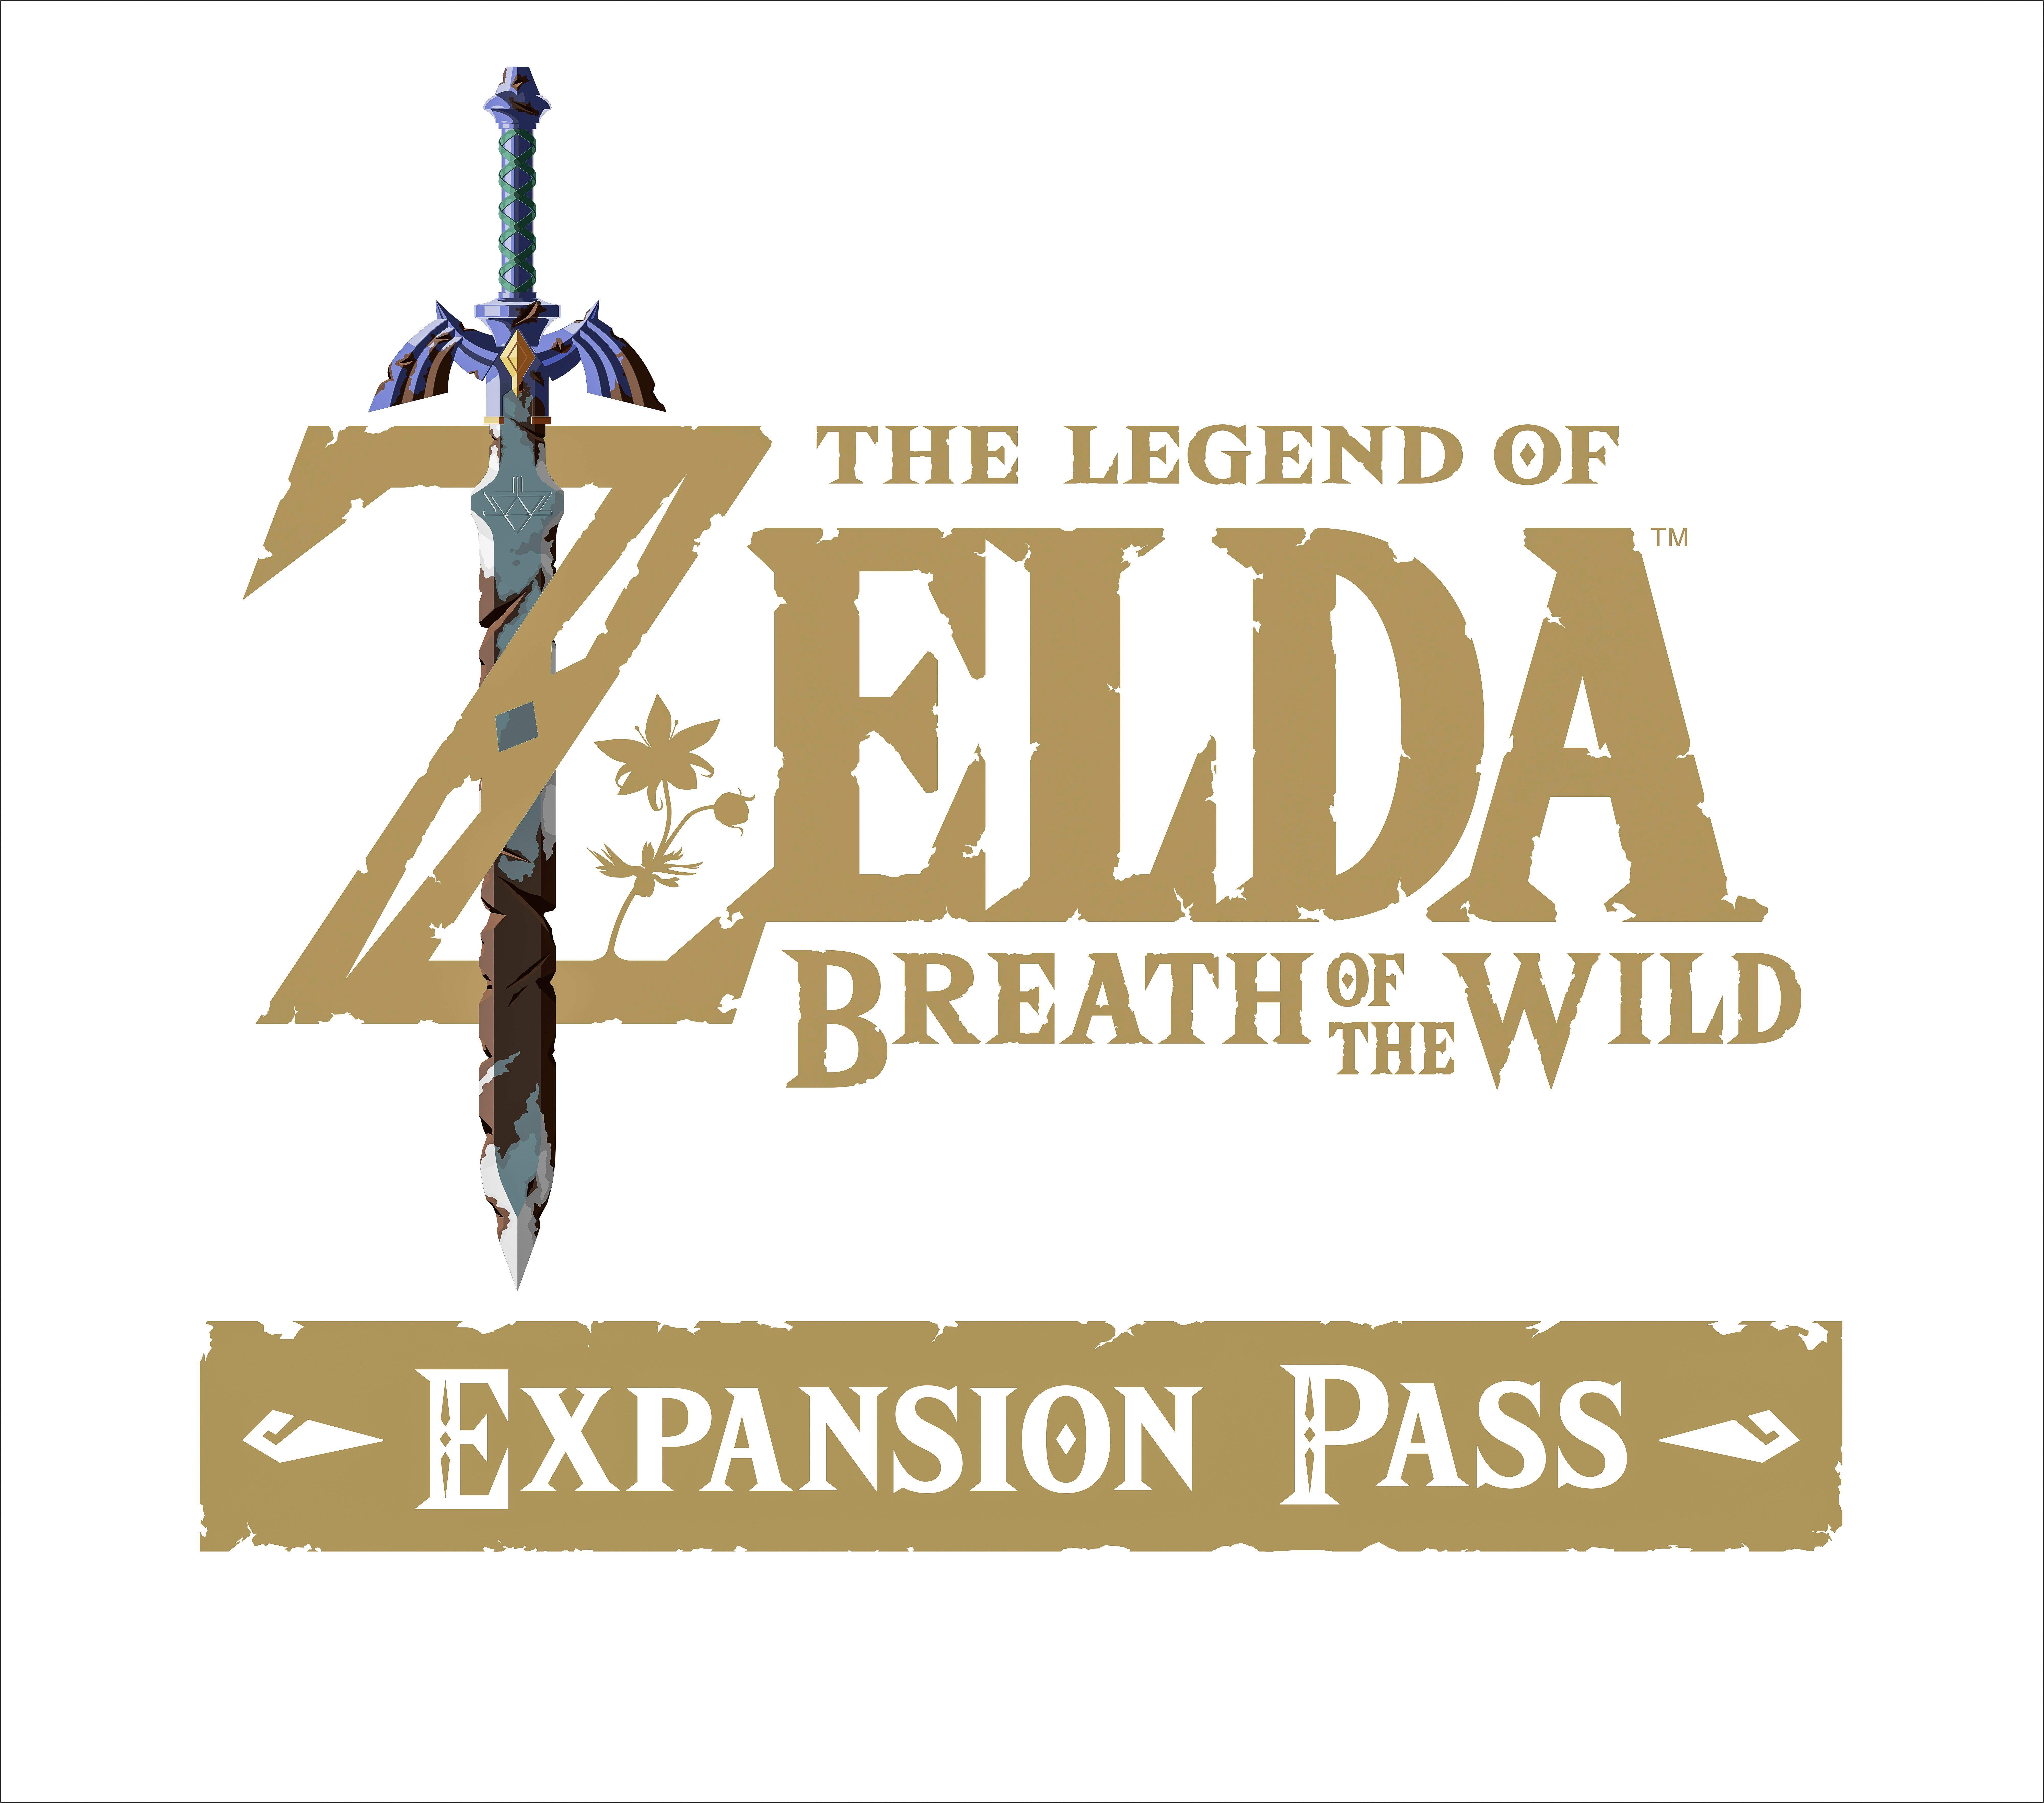 The Legend of Zelda Breath of the Wild Expansion Pass.